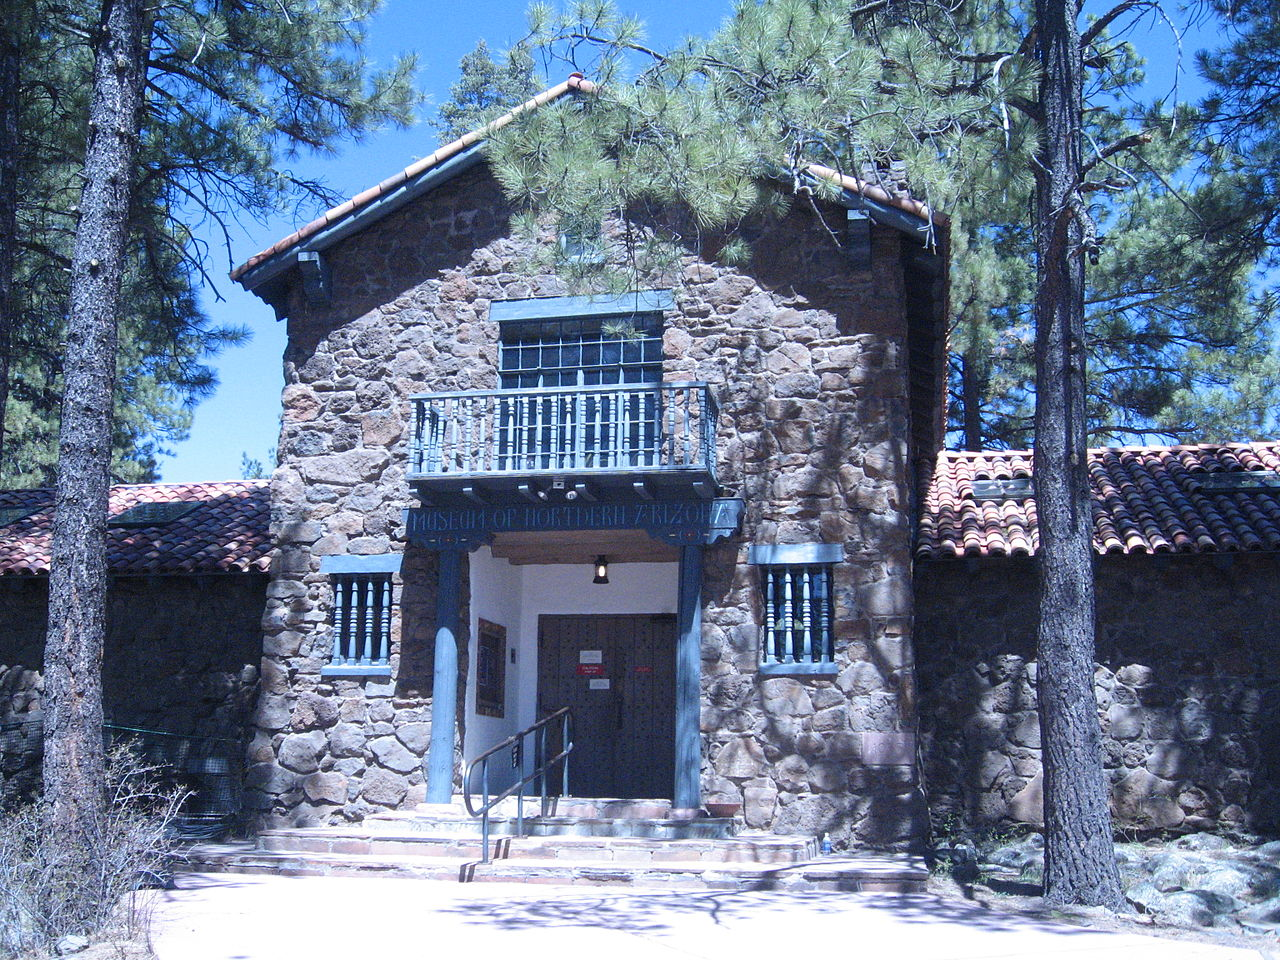 Best Places To Shop in Flagstaff